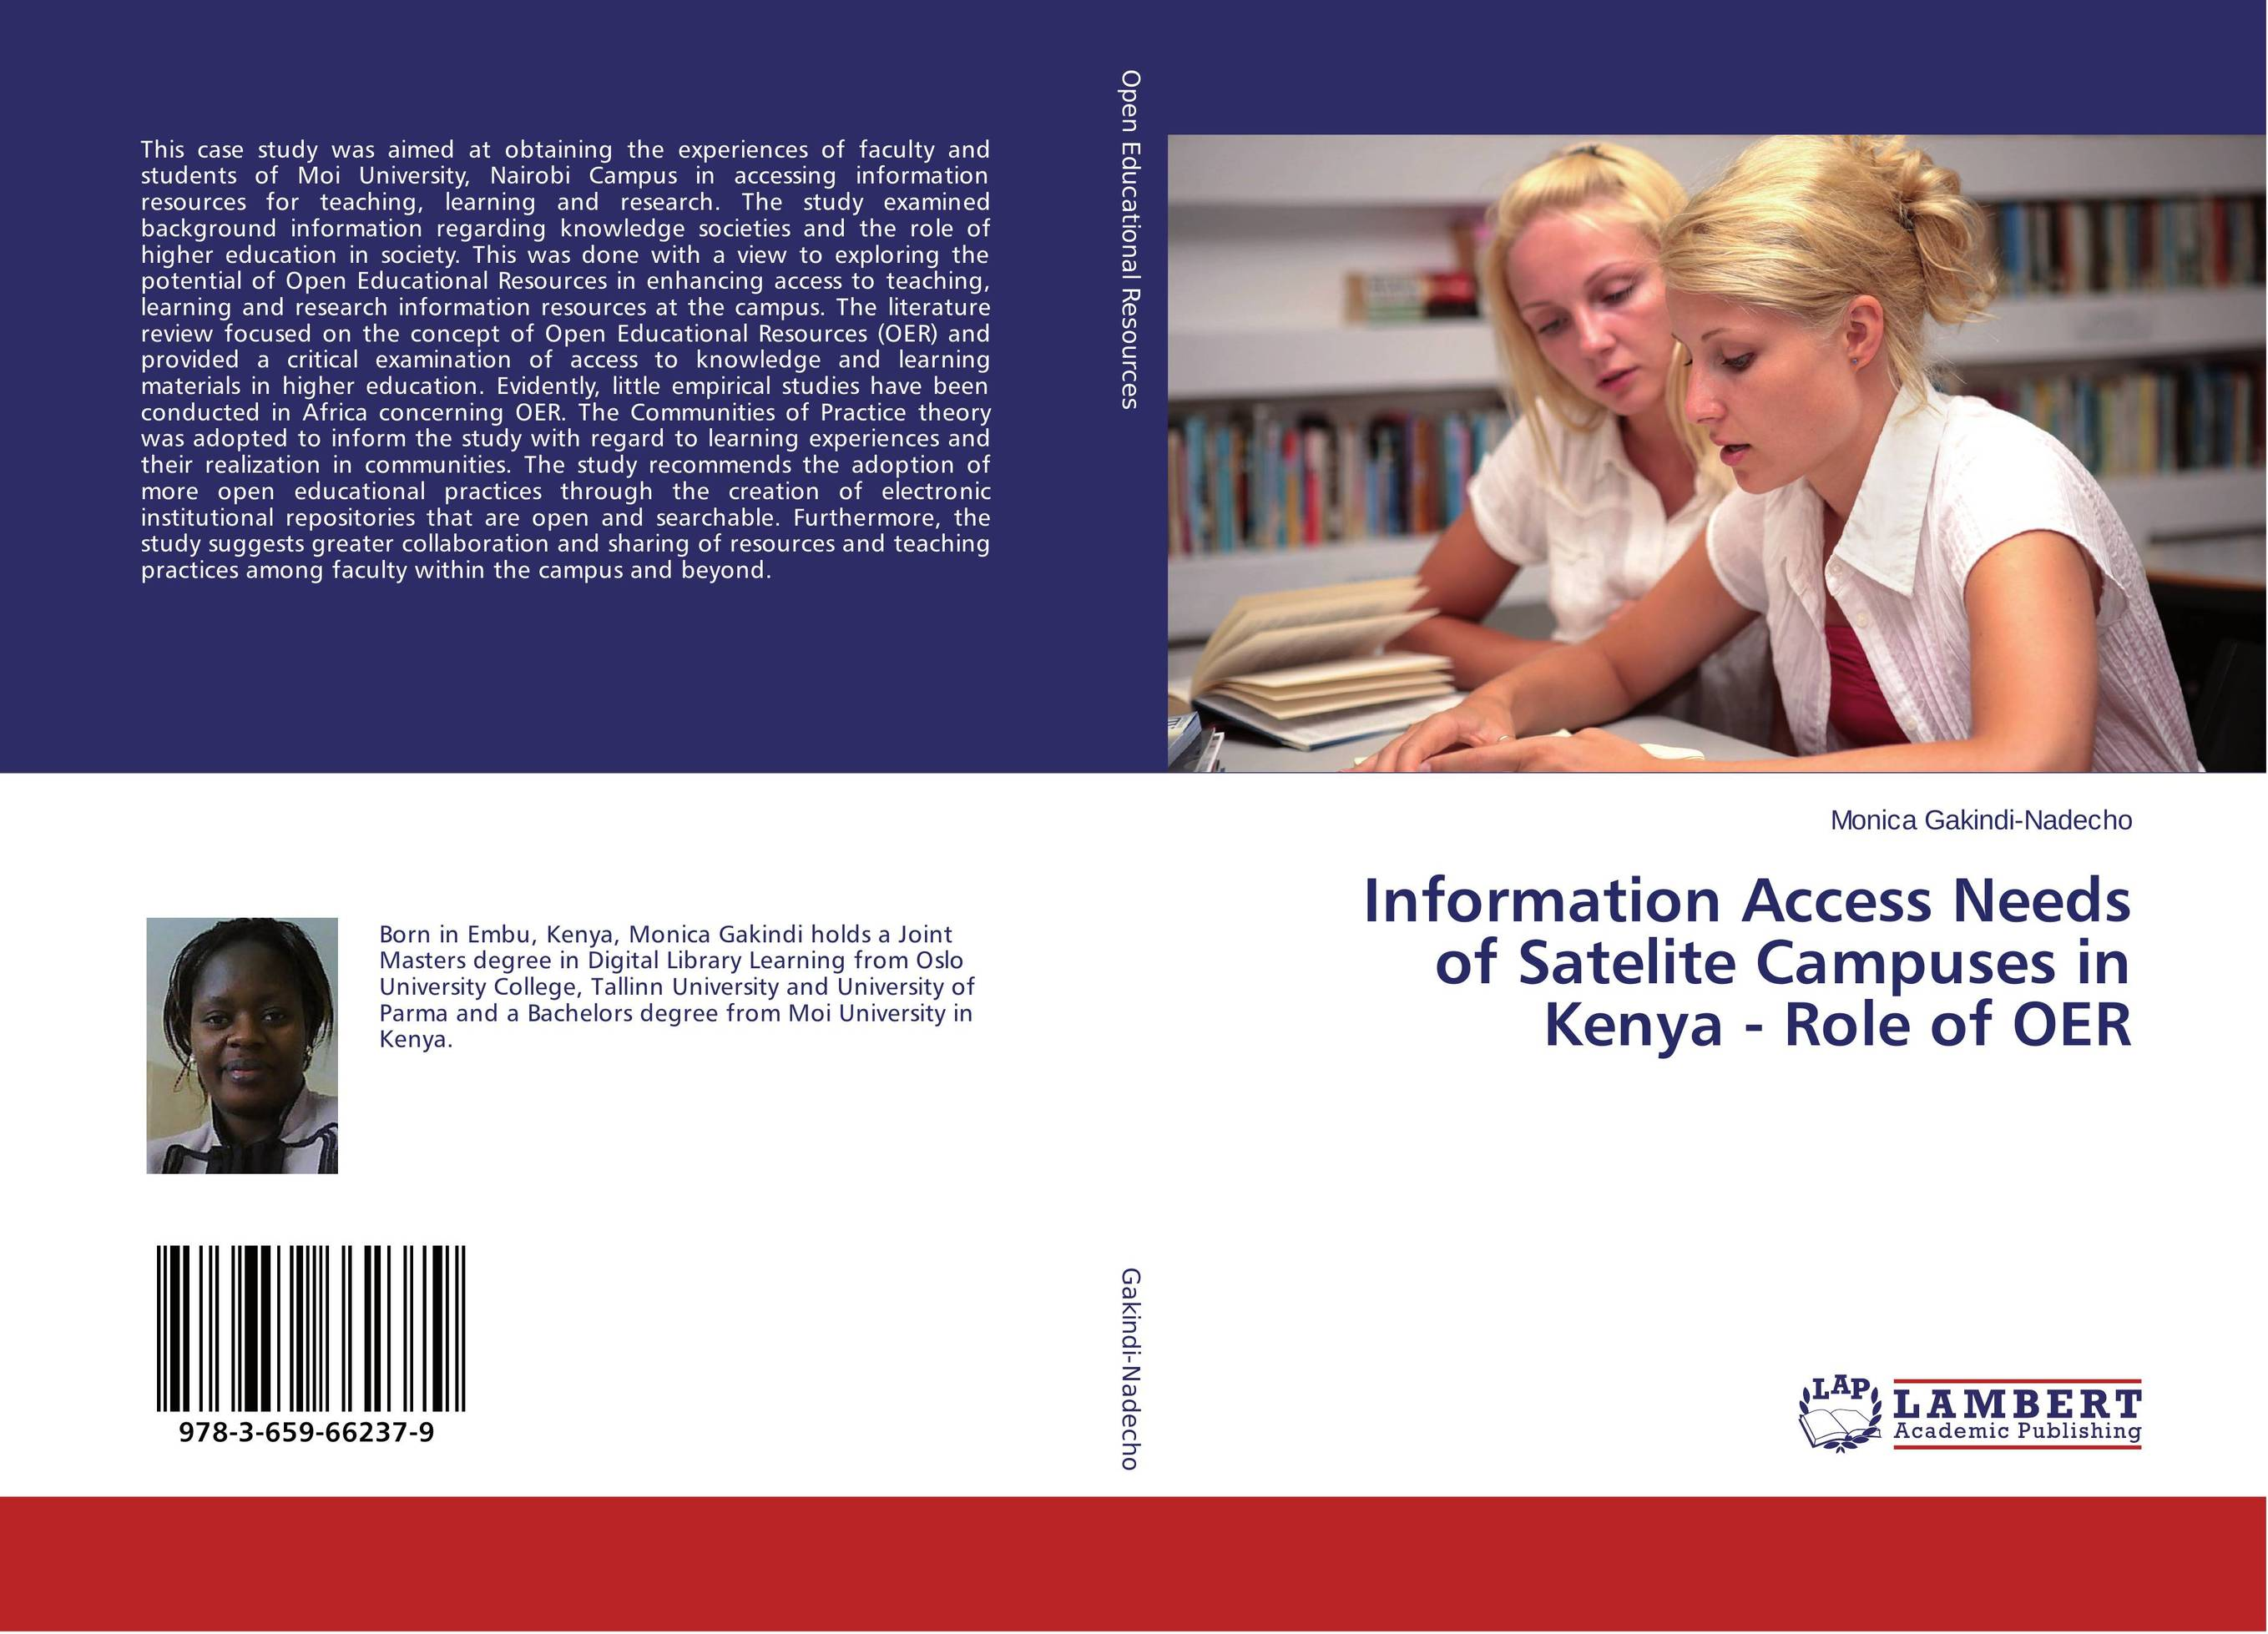 Information Access Needs of Satelite Campuses in Kenya - Role of OER learning resources набор пробей